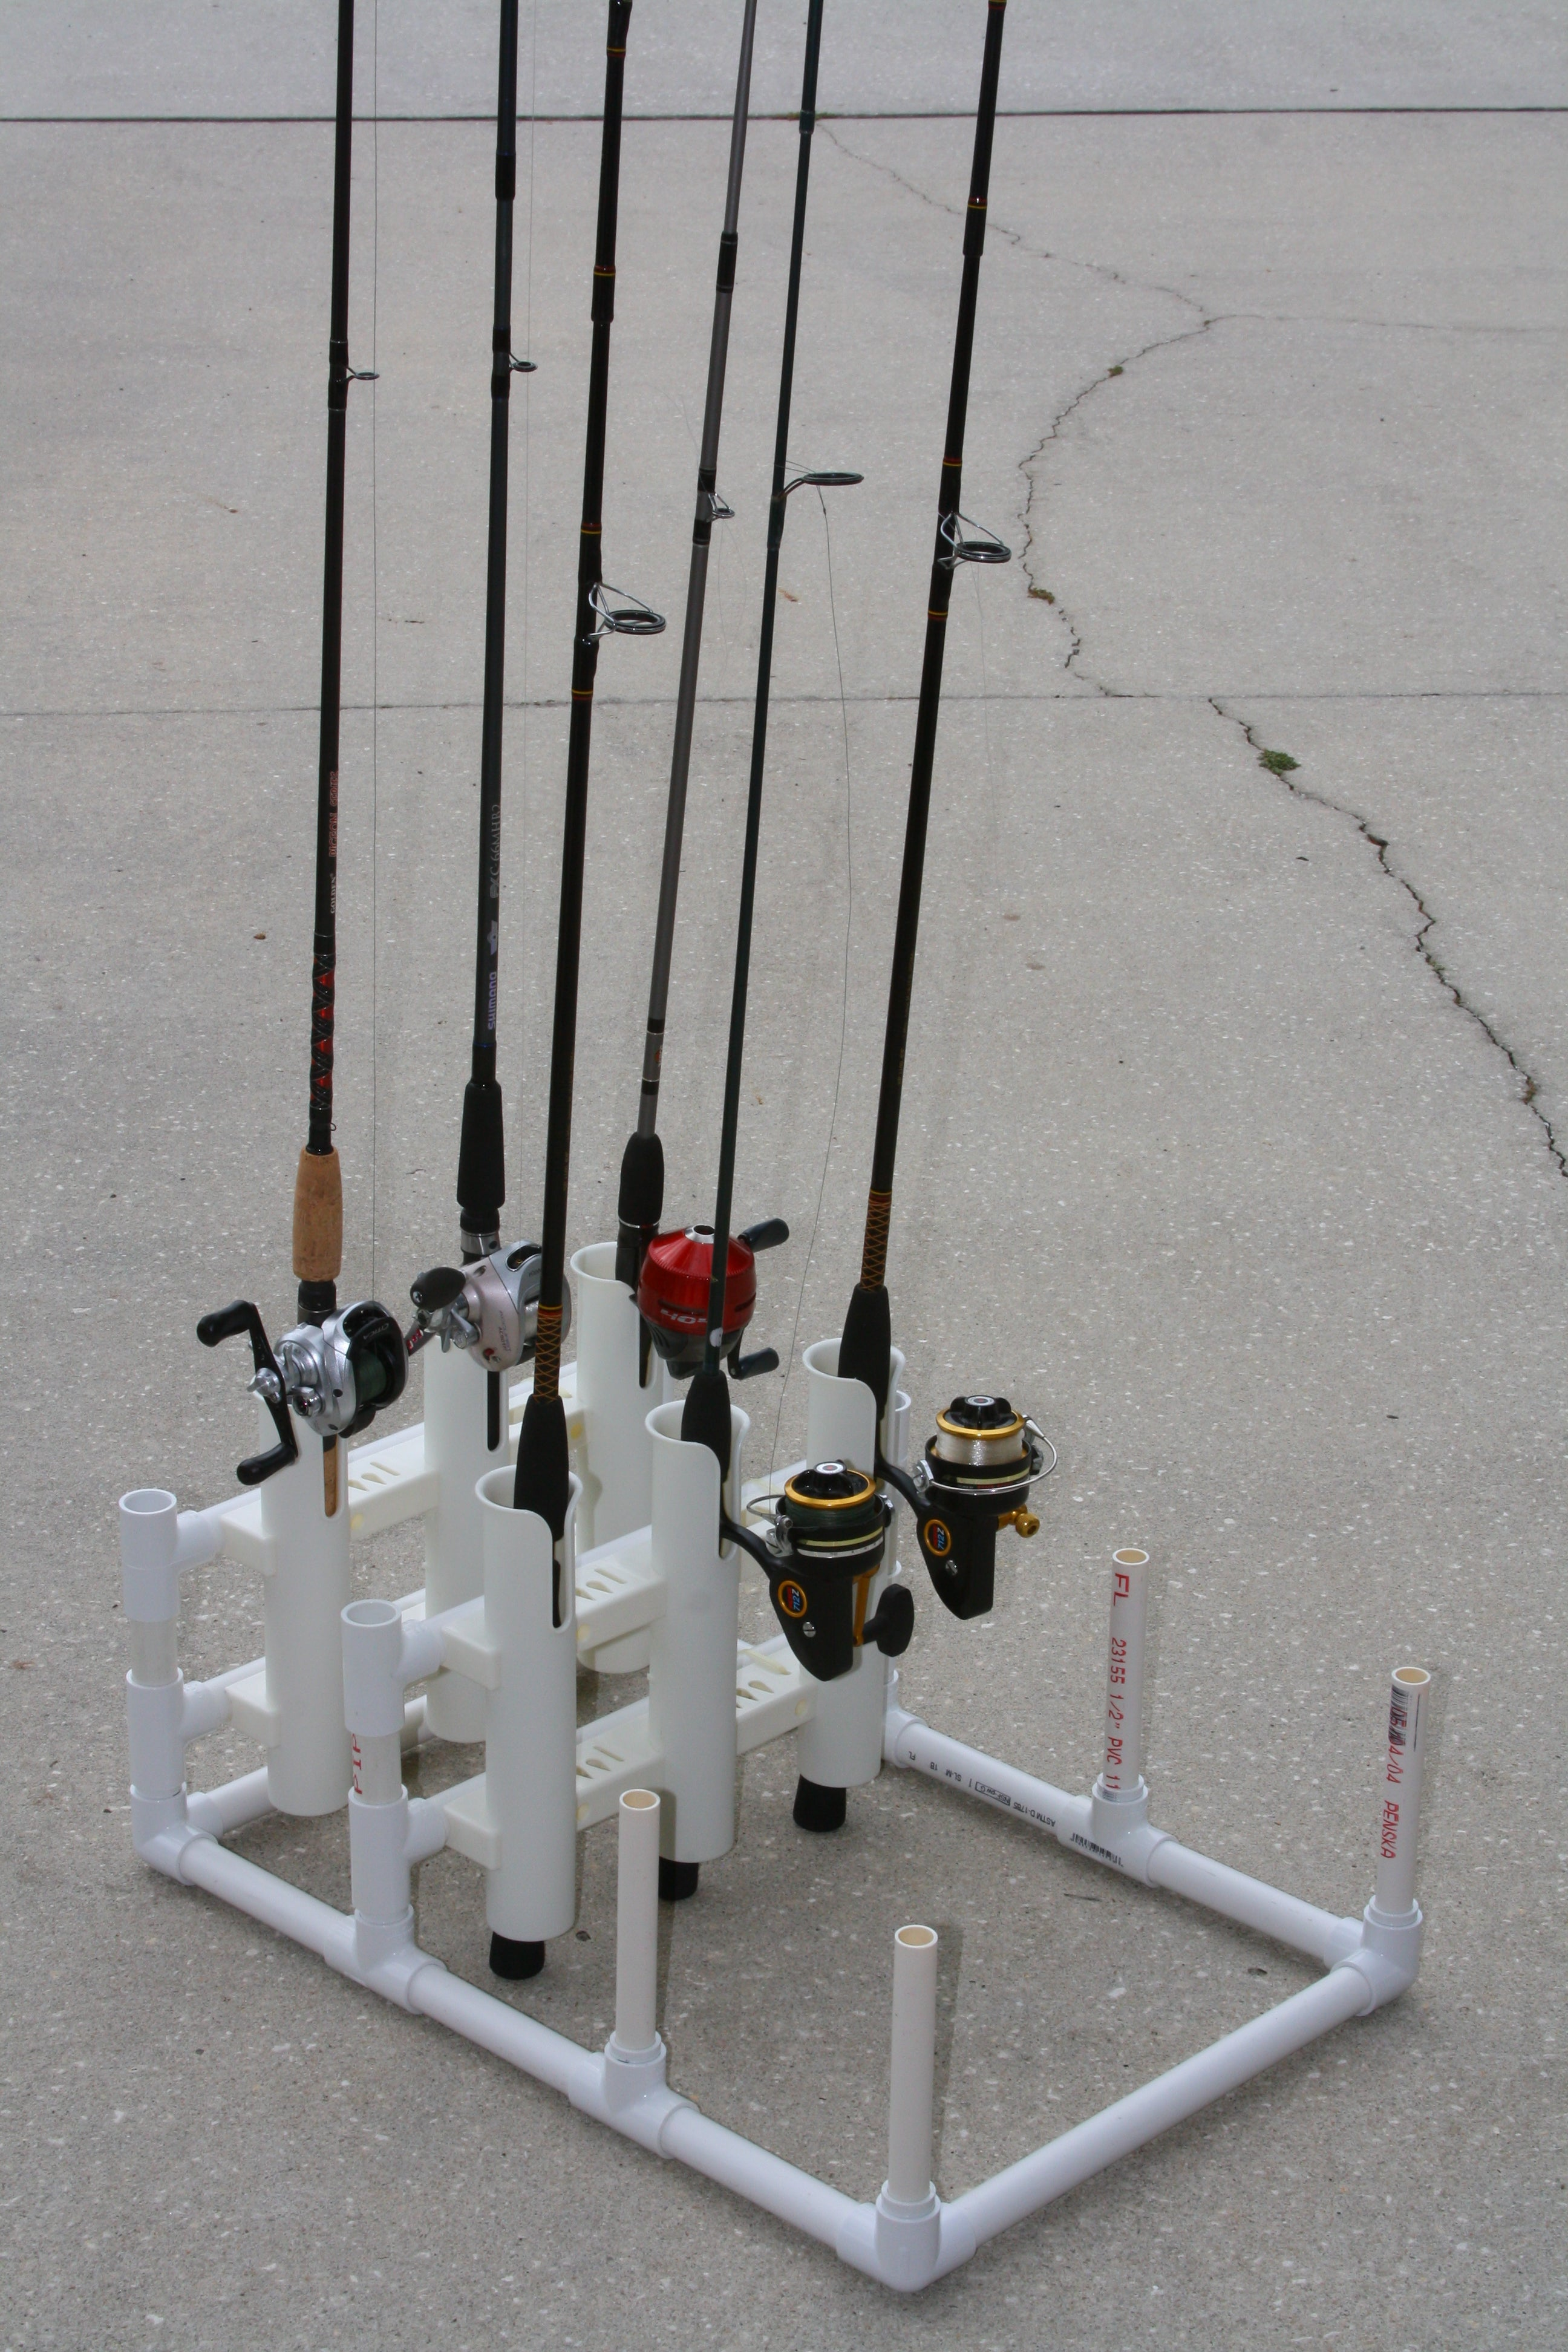 Pvc Modular Fishing Rod Holder 6 Steps With Pictures Instructables